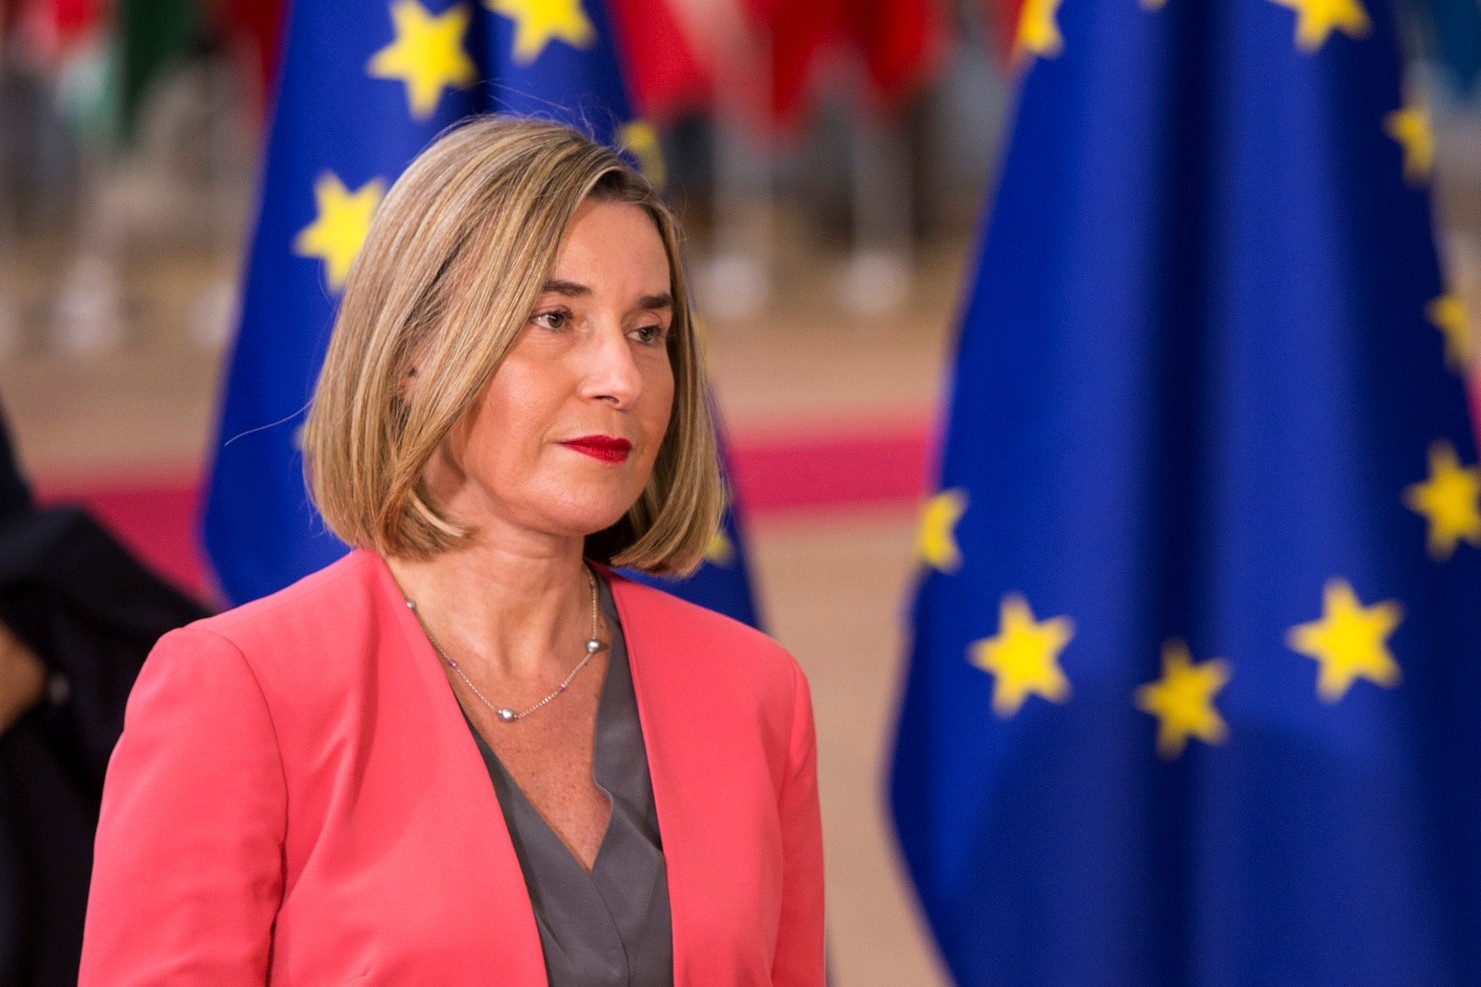 Mogherini: Turkey to respect the sovereign rights of Cyprus